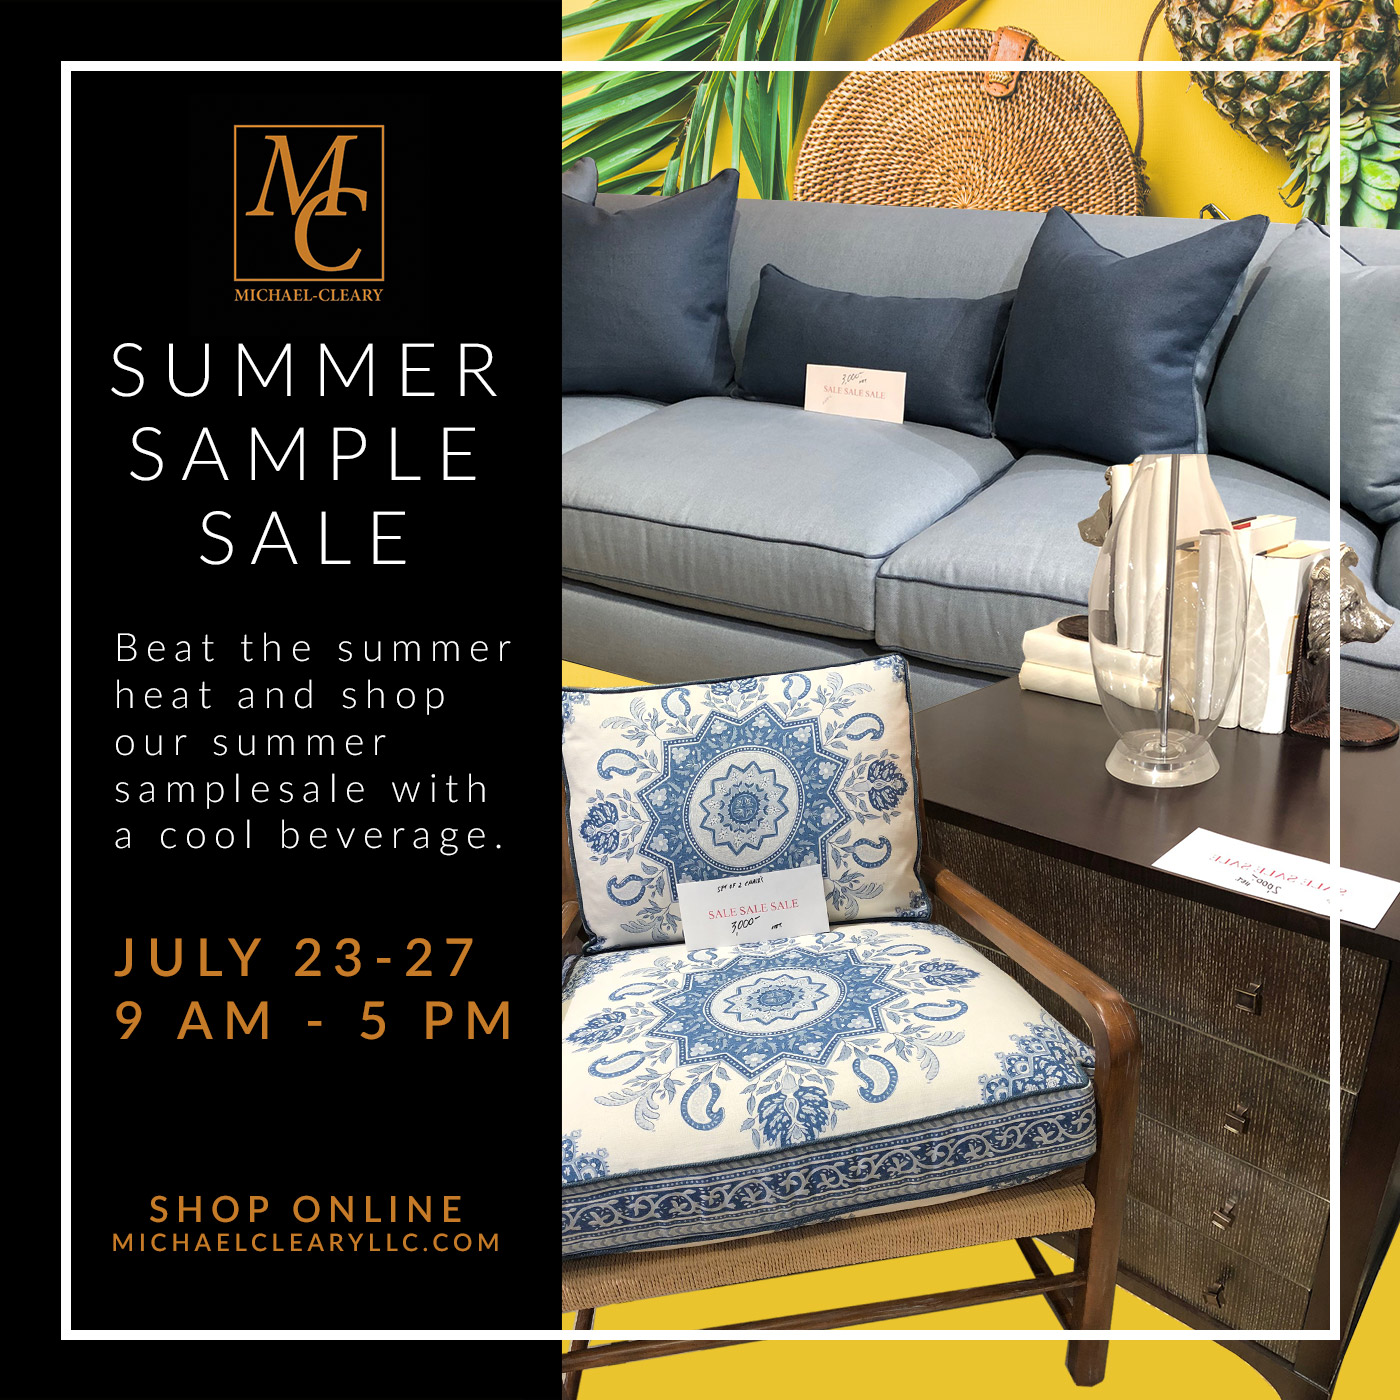 Summer Sample Sale at Michael-Cleary